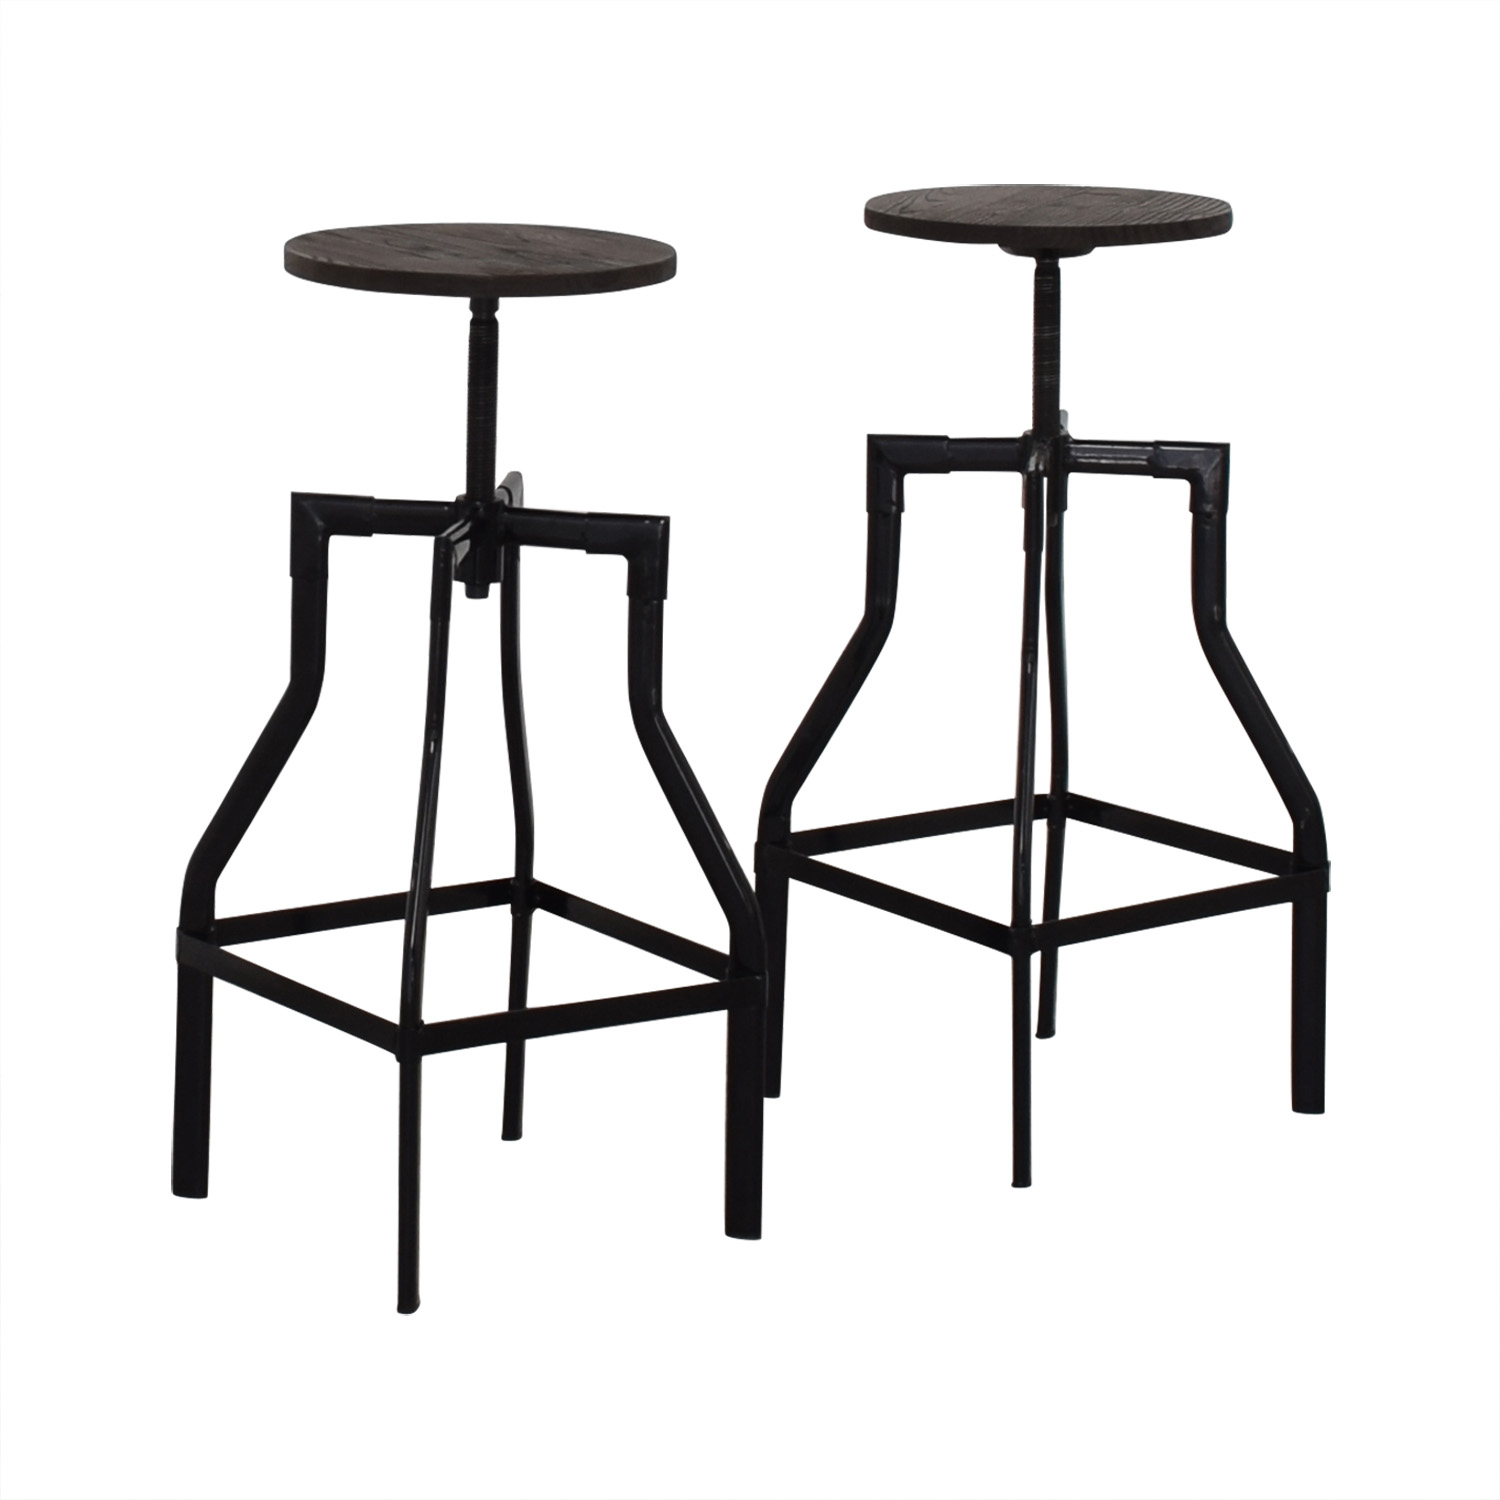 Industrial Wood Stools brown